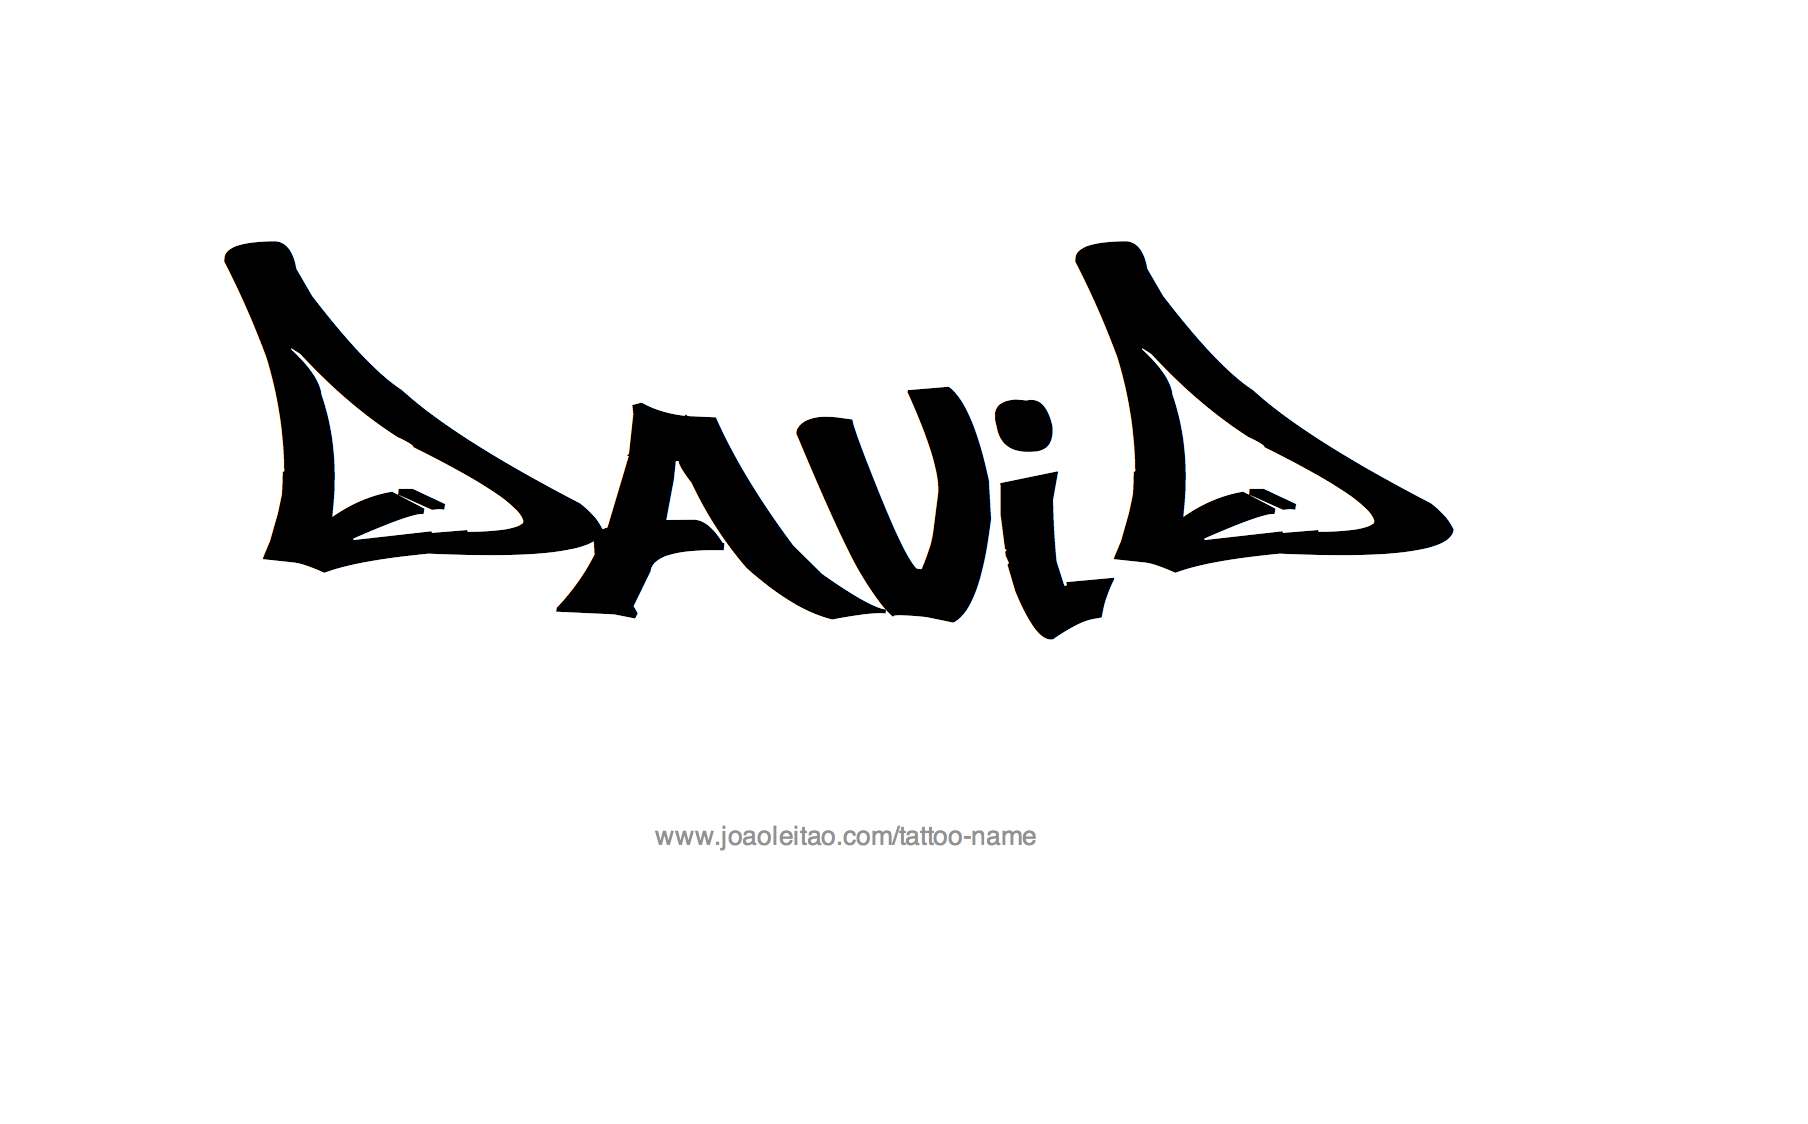 a709297f9ff38 David Name Tattoo Designs | David | Tattoo designs、Name tattoo ...